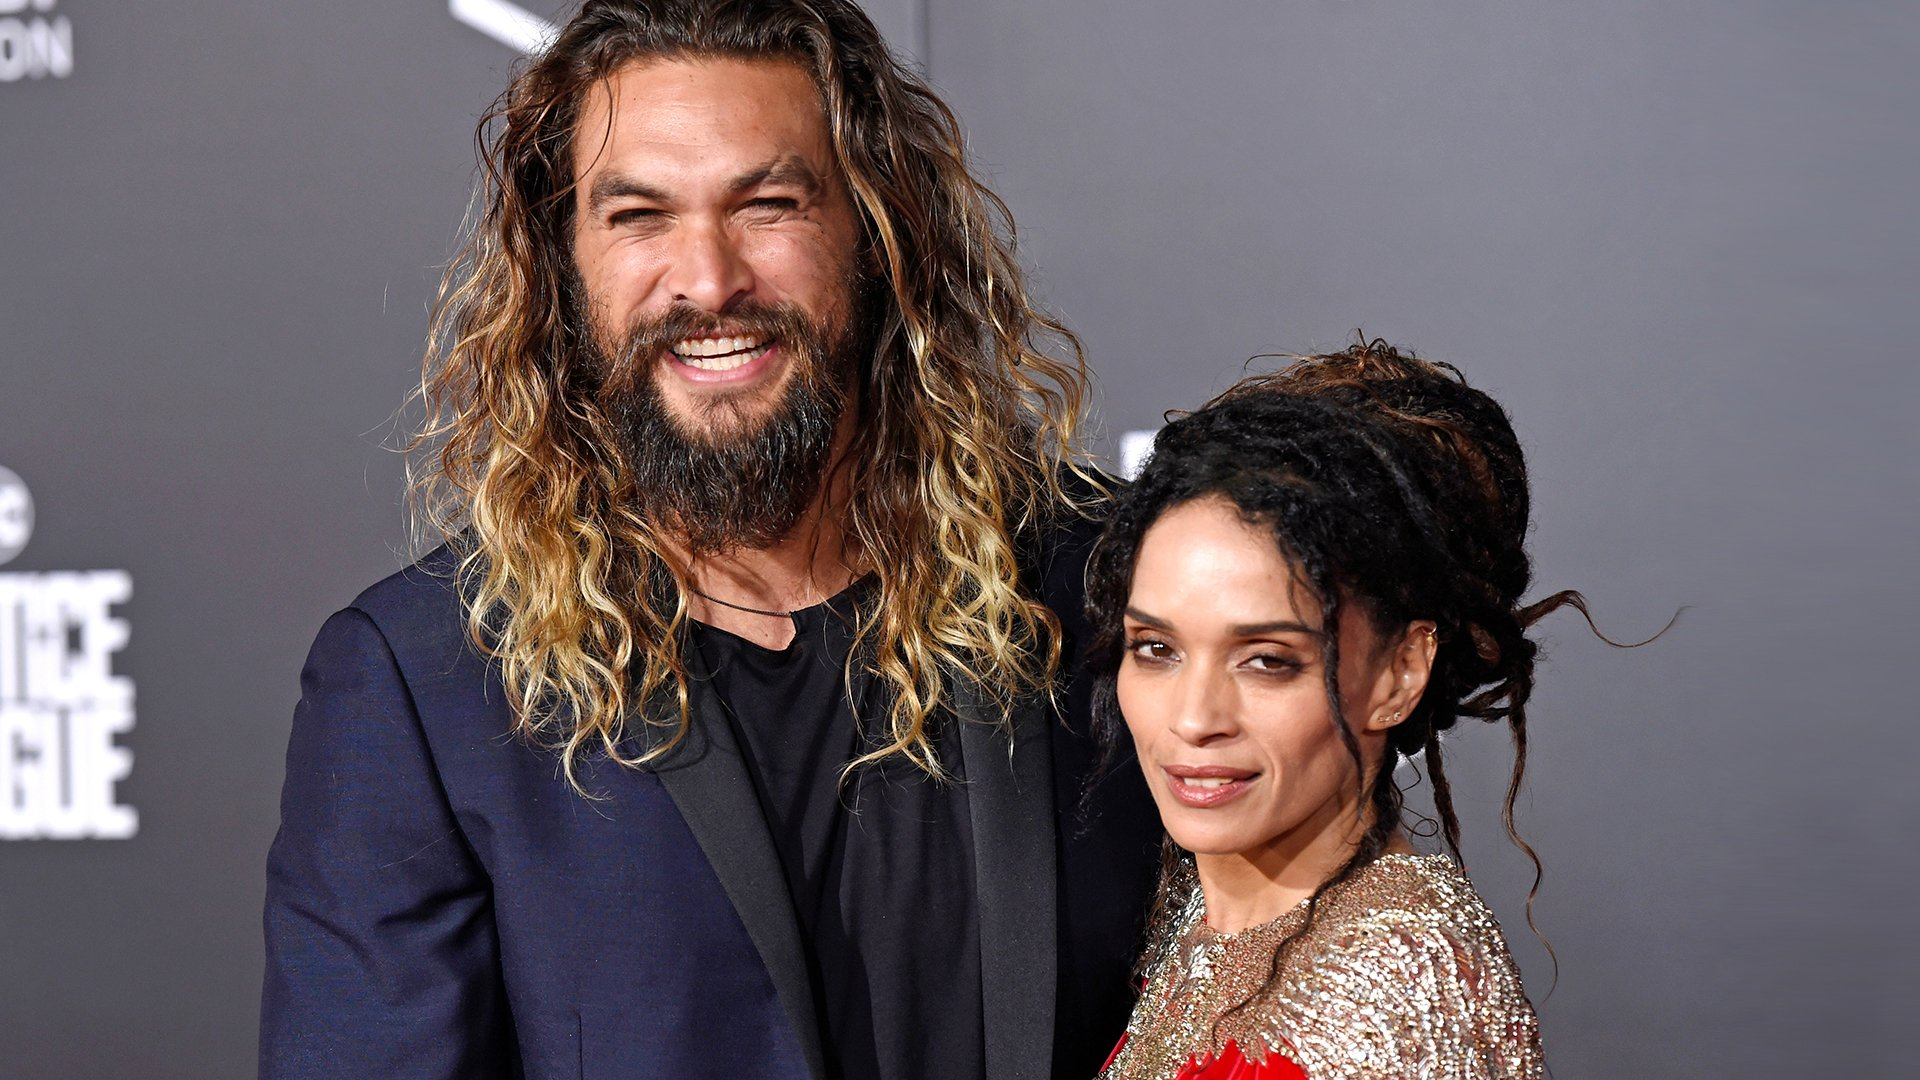 Jason Momoa & Lisa Bonet\s untold love story... Happy Birthday, Aquaman!